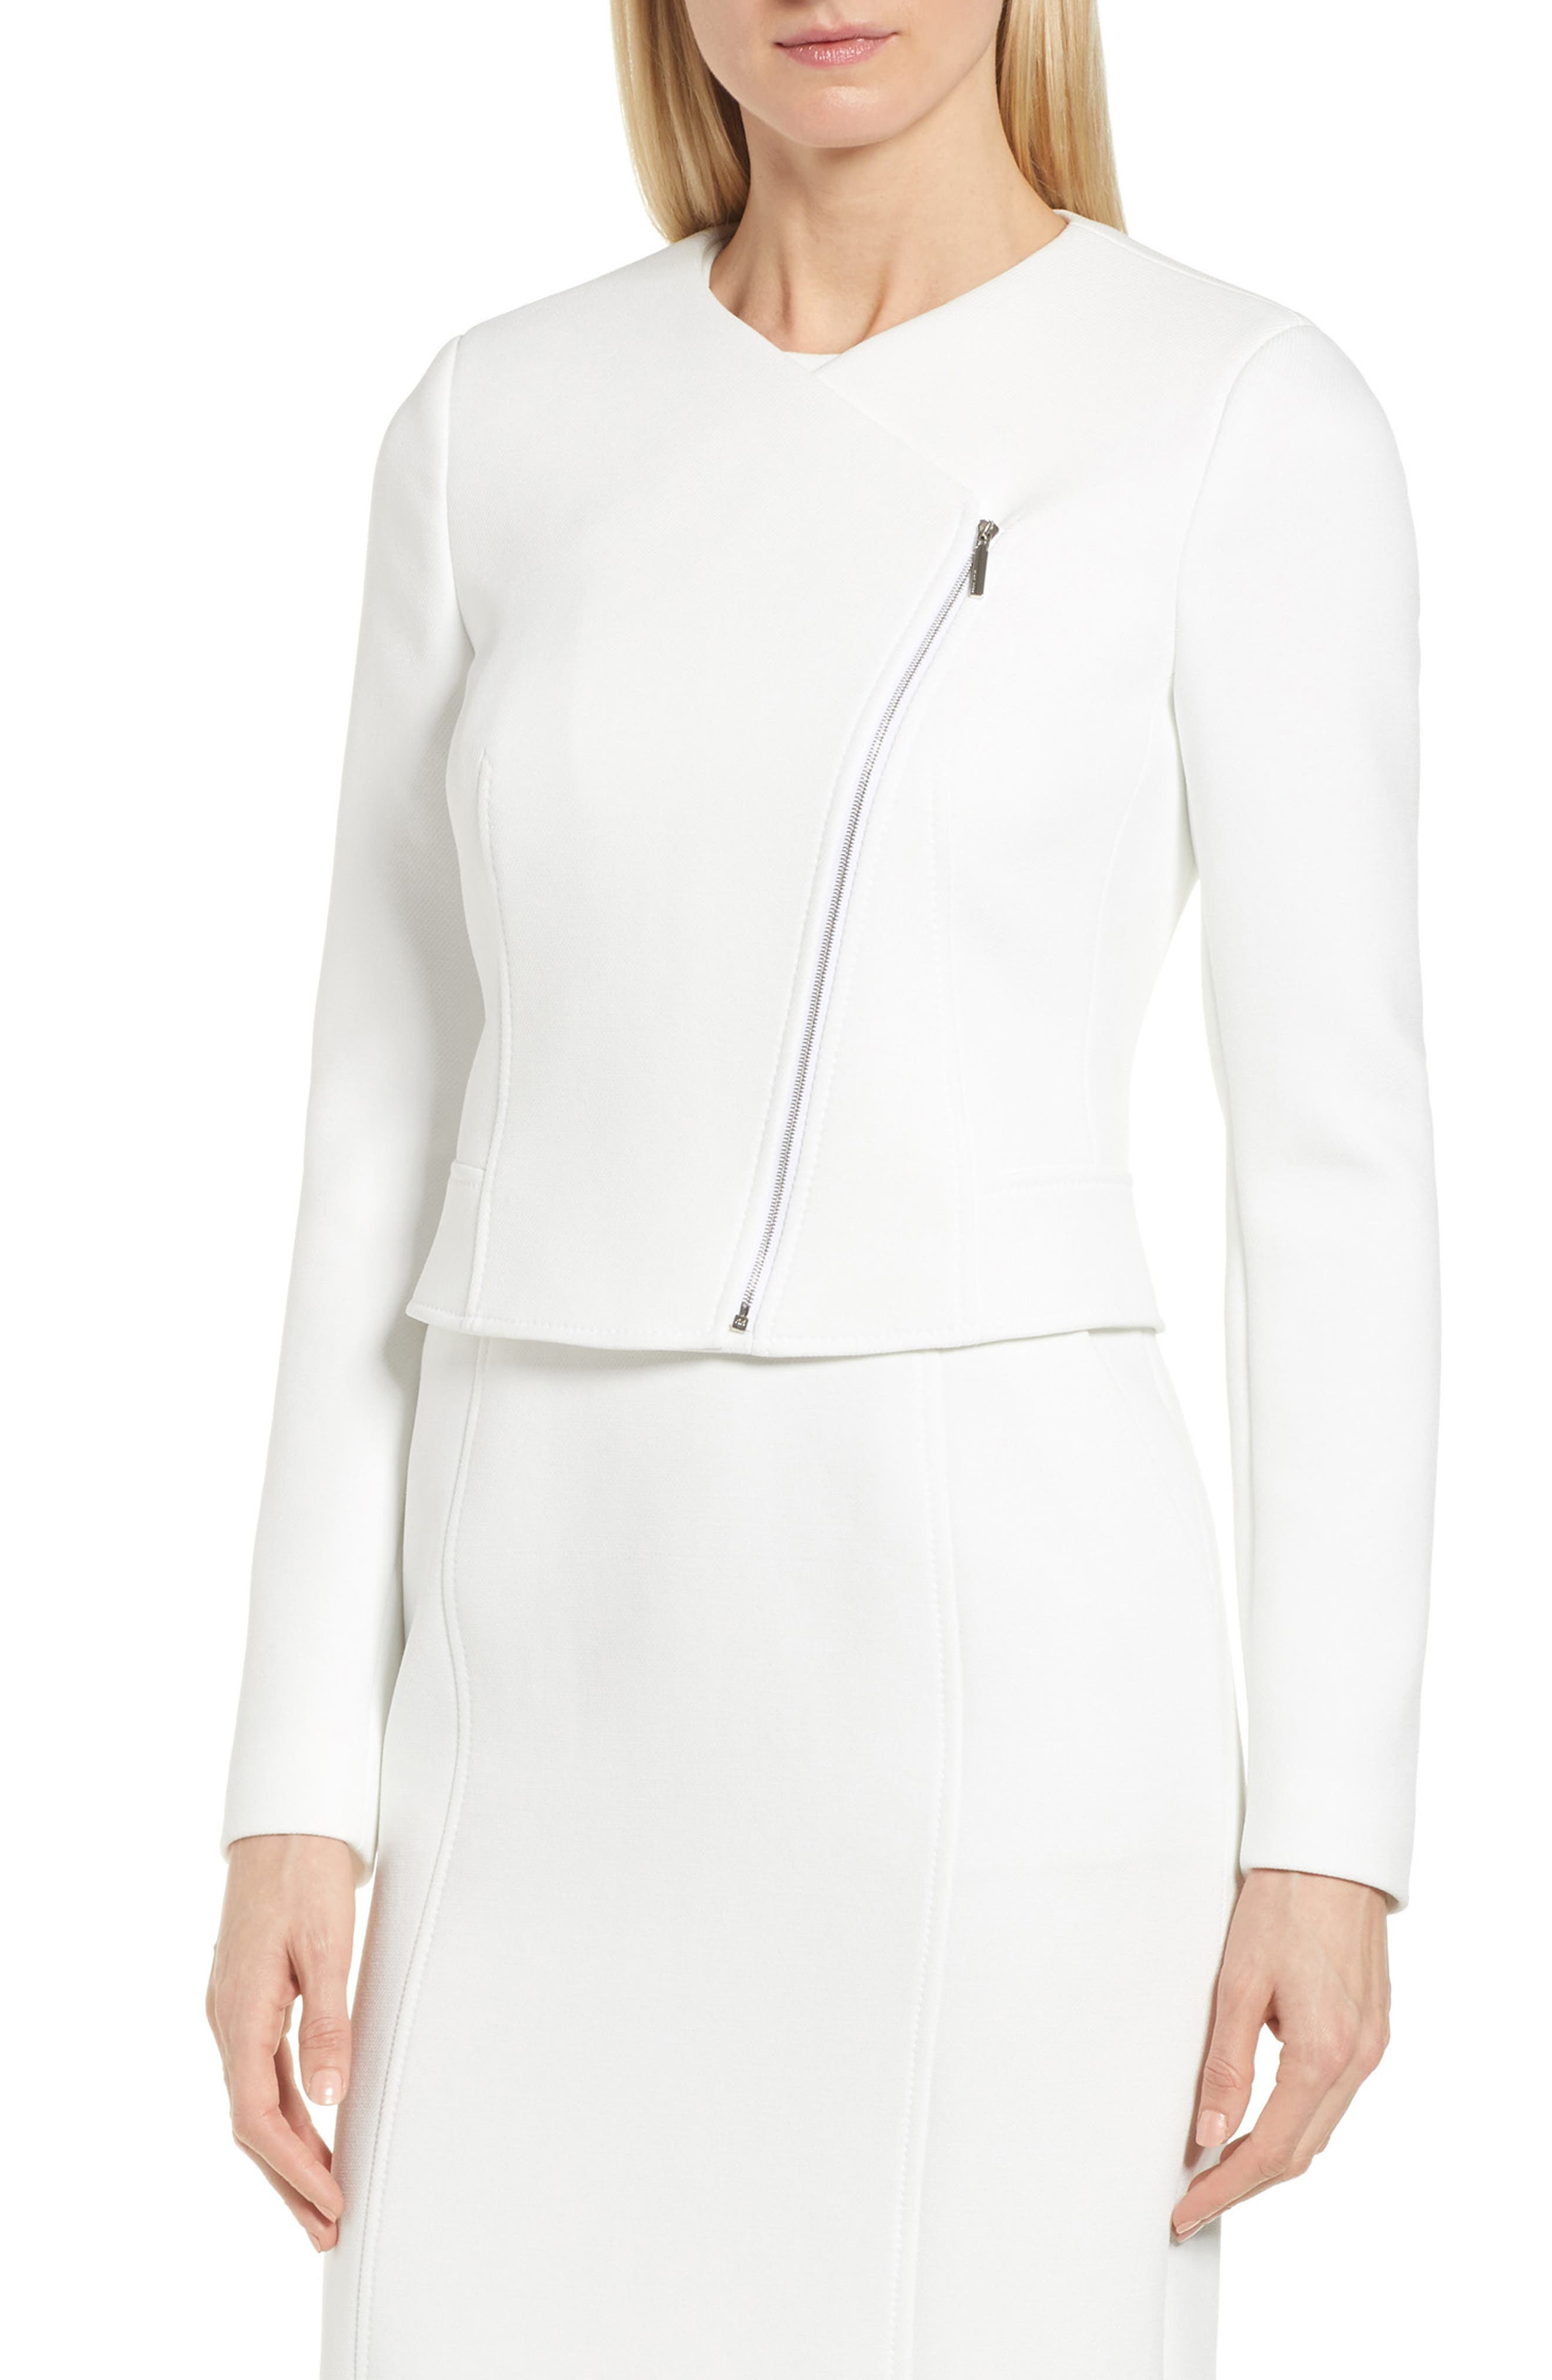 Juleama Compact Twill Asymmetrical Zip Jacket,                             Main thumbnail 1, color,